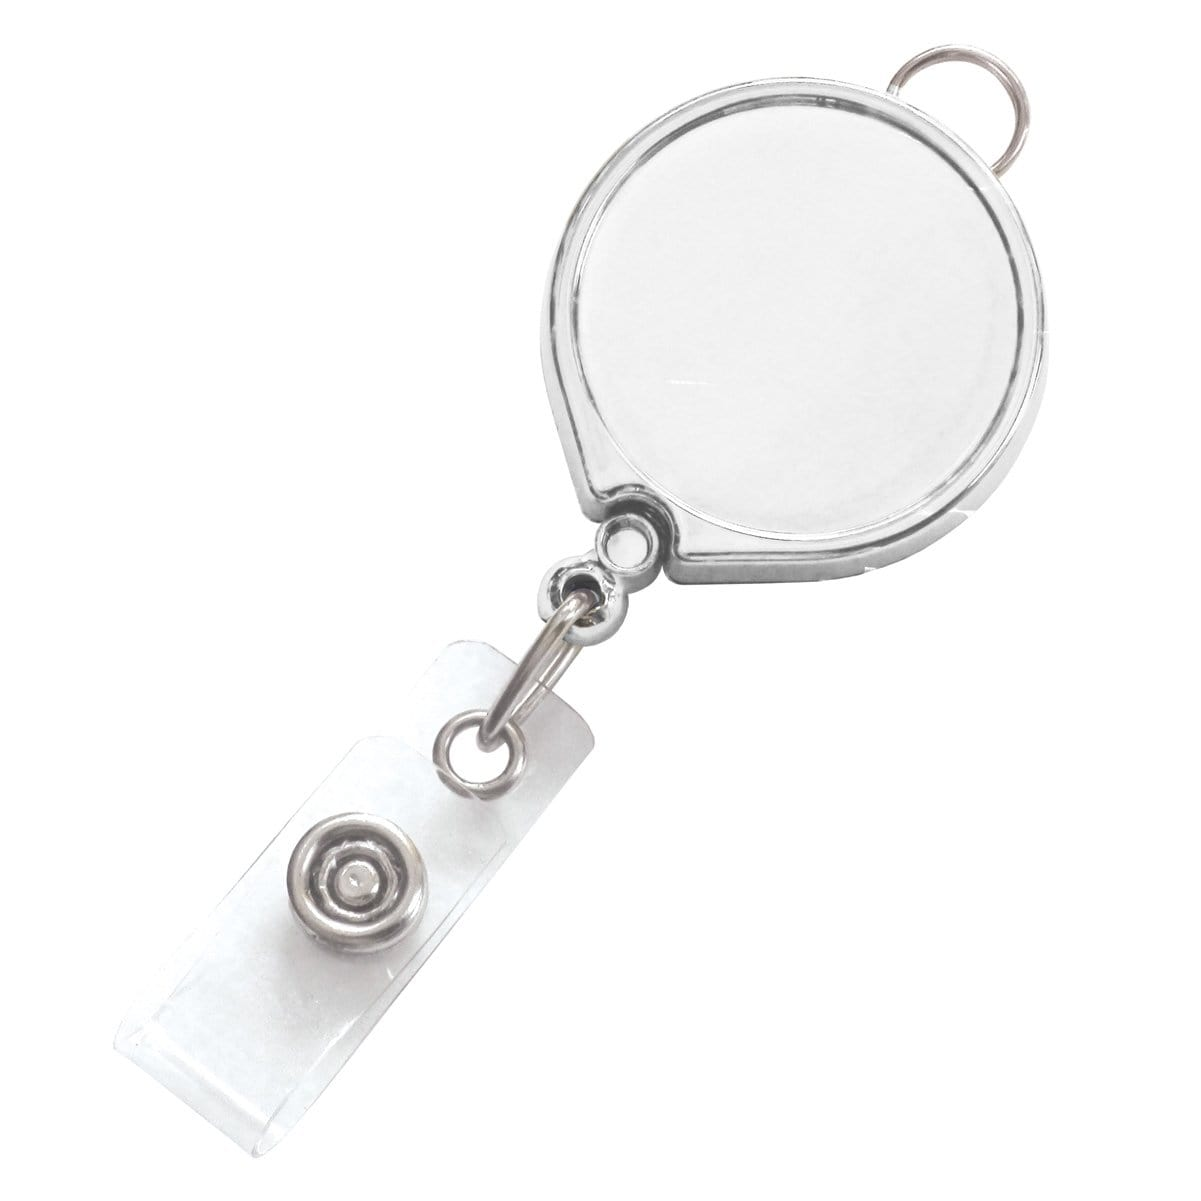 Badge Reel with Lanyard Attachment and Belt Clip (P/N 2124-302X)